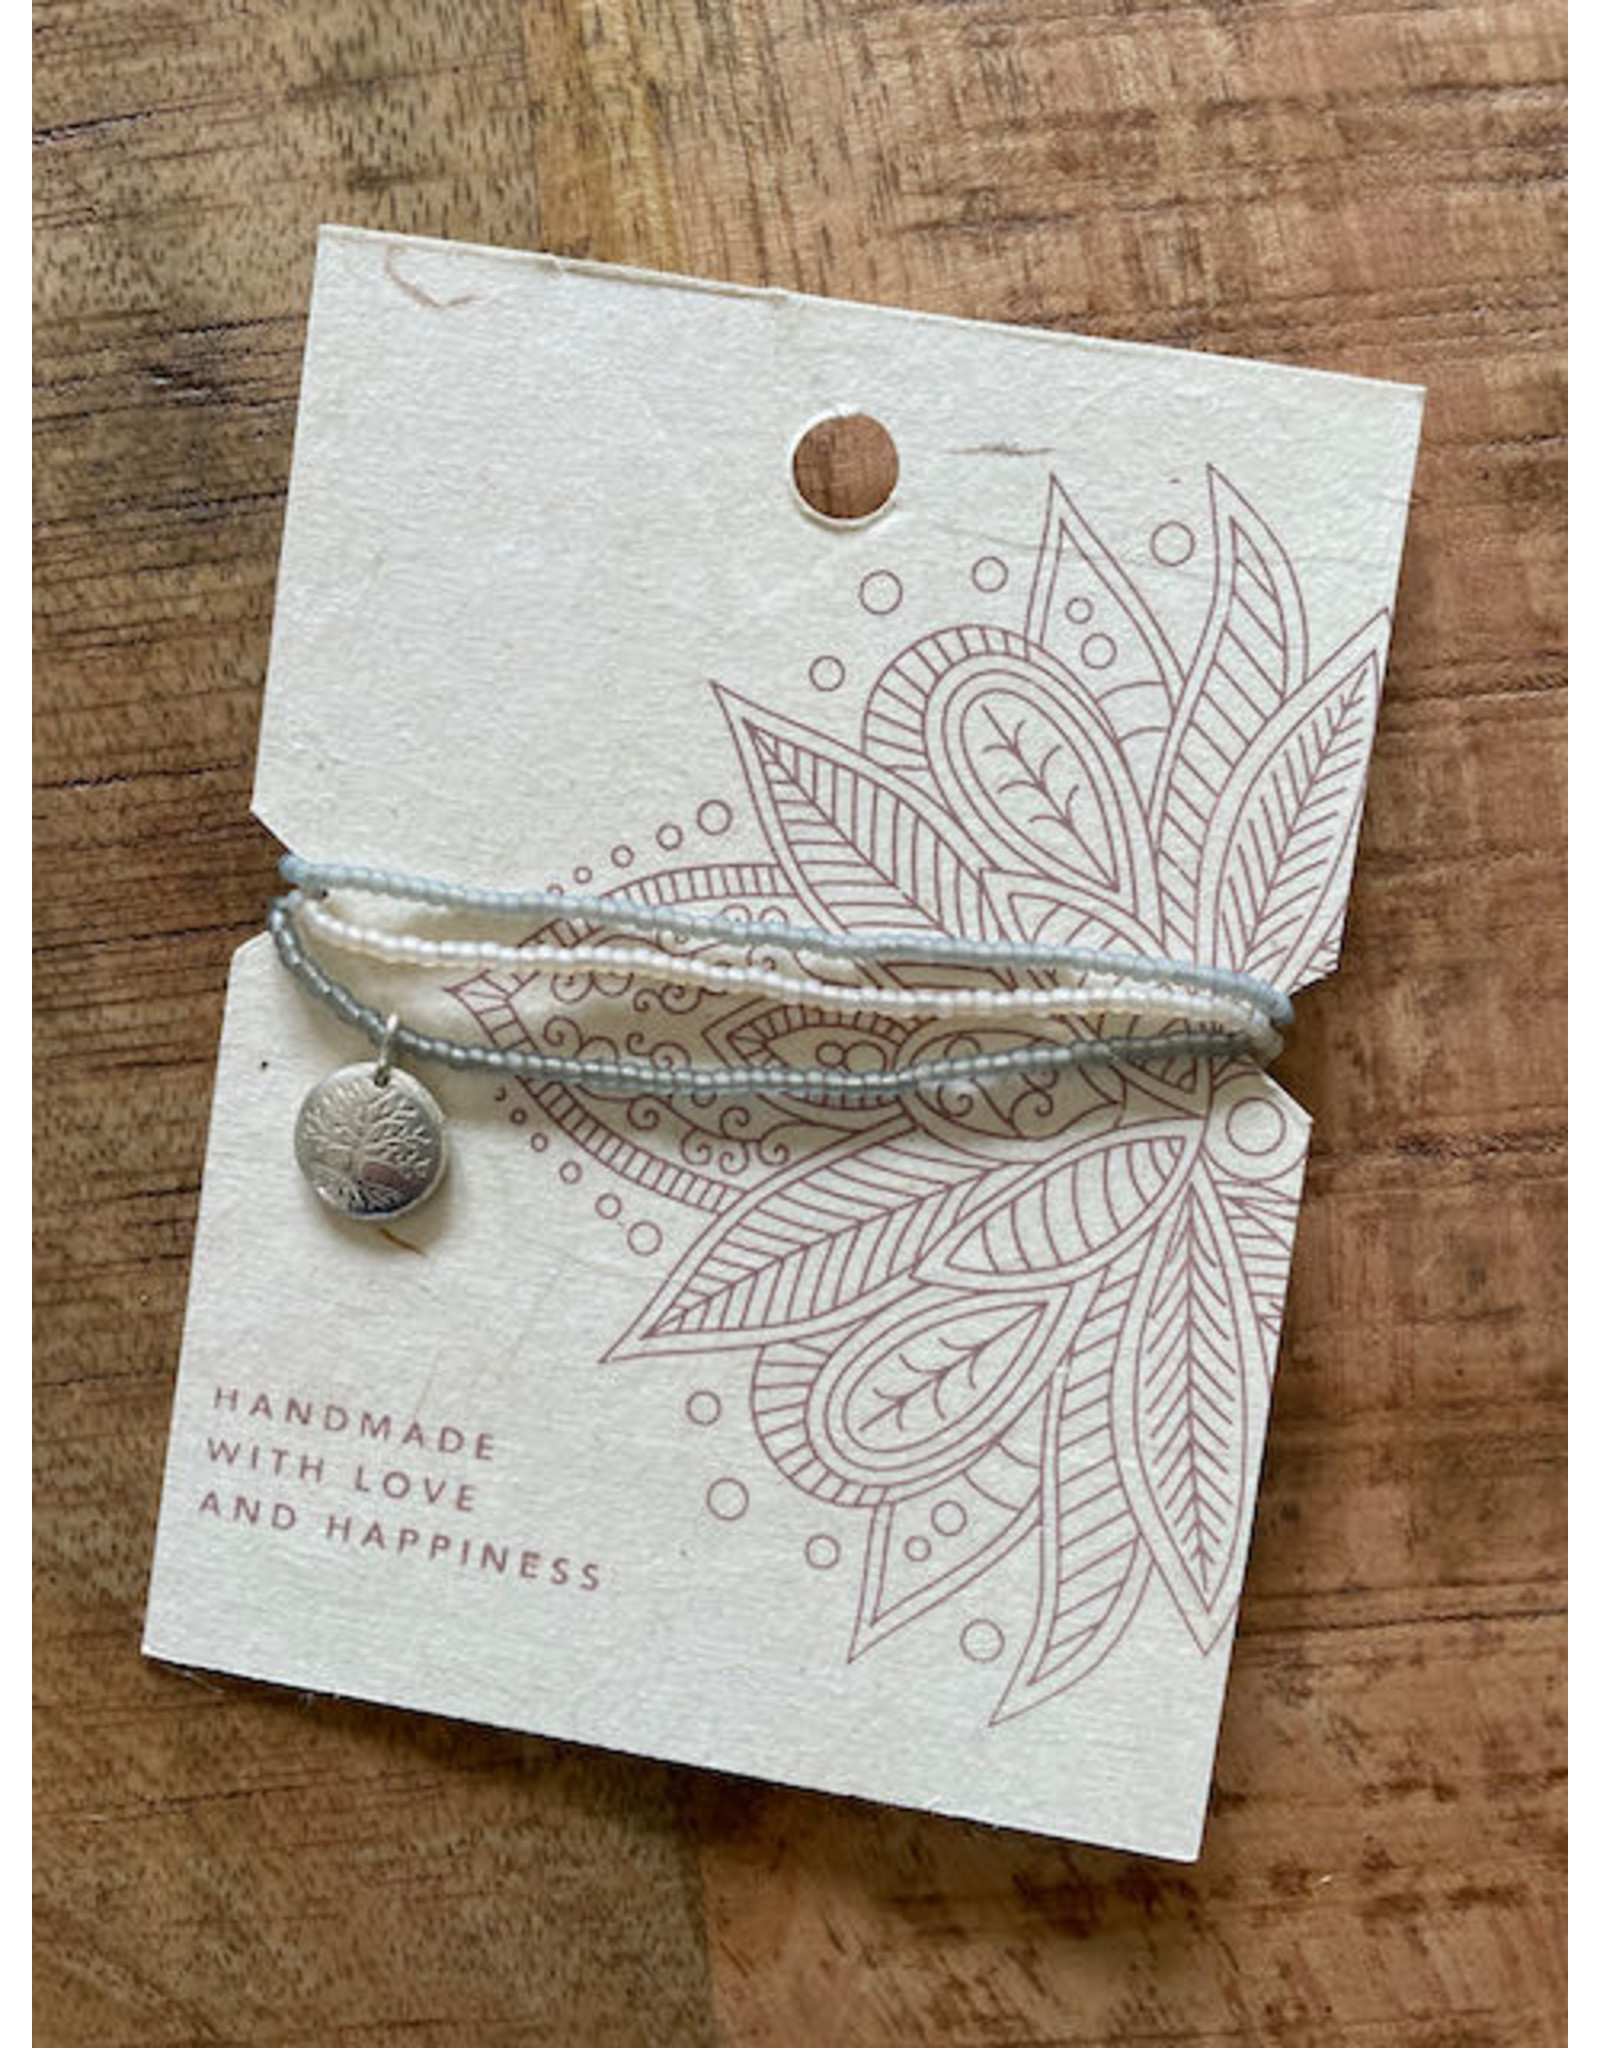 Bracelet with 3 bands and tree of life charm